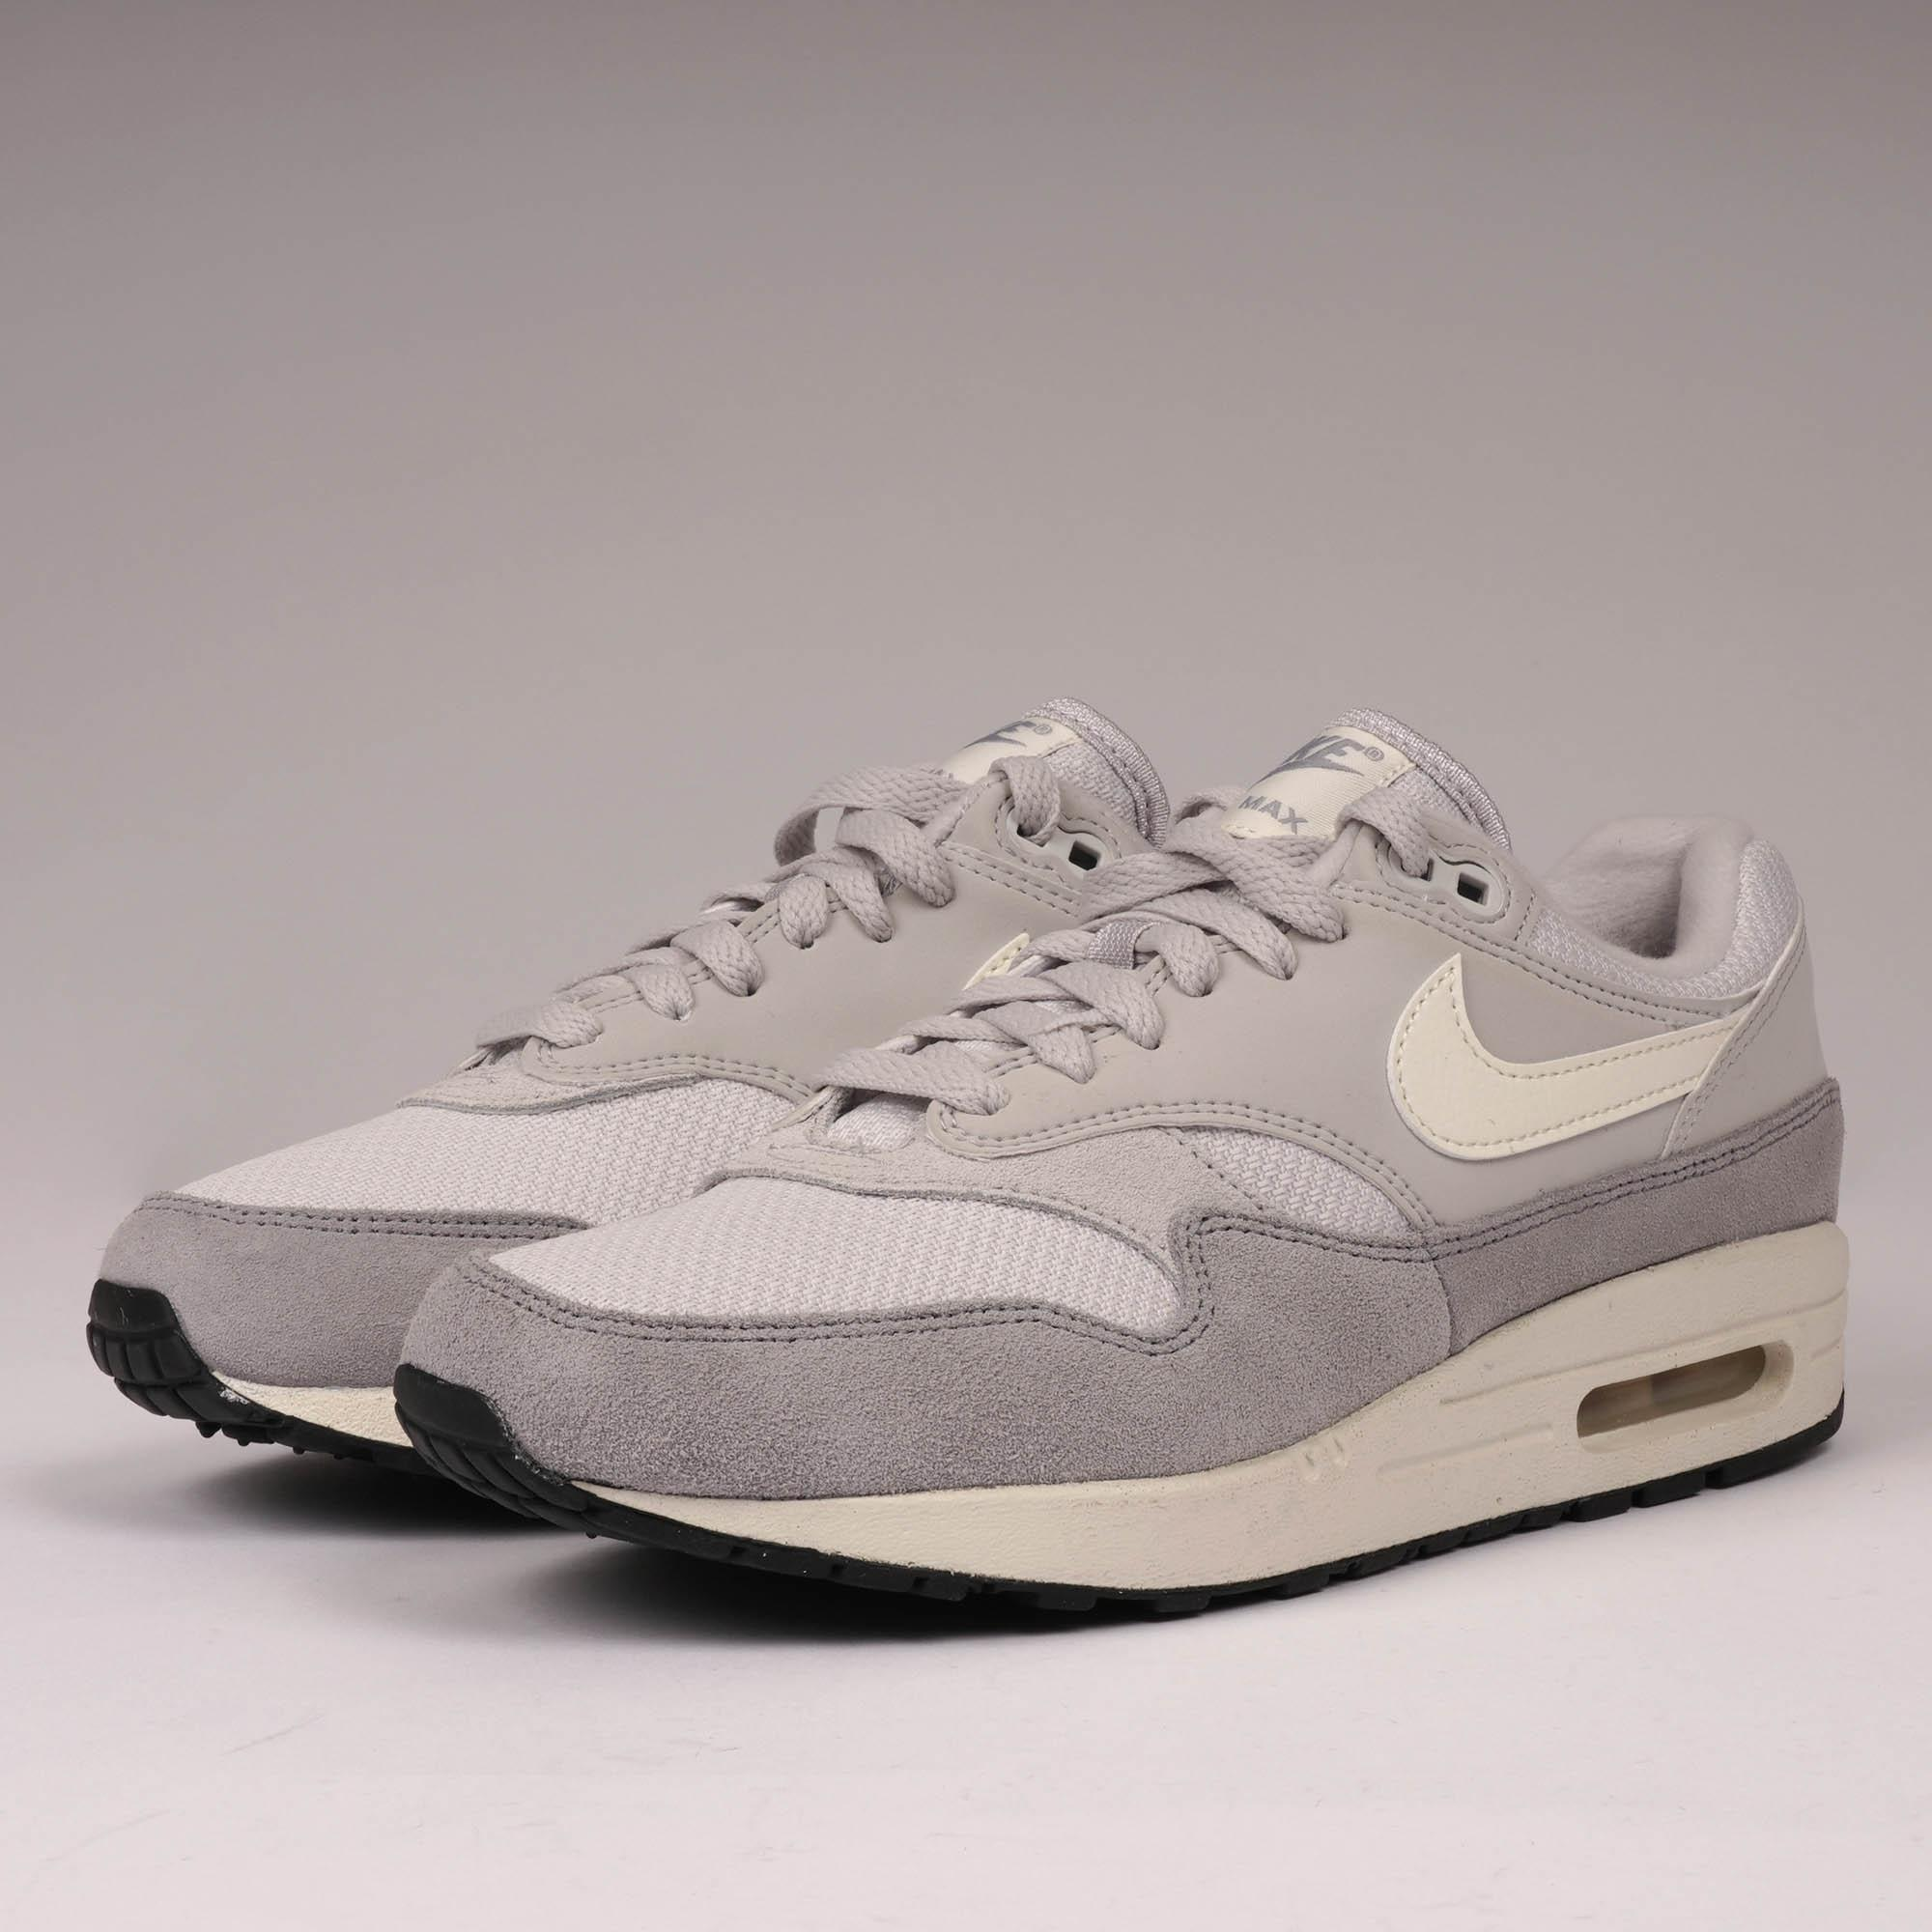 huge discount 07a91 19d41 Nike Air Max 1 - Vast Grey, Sail   Wolf Grey in Gray for Men - Lyst